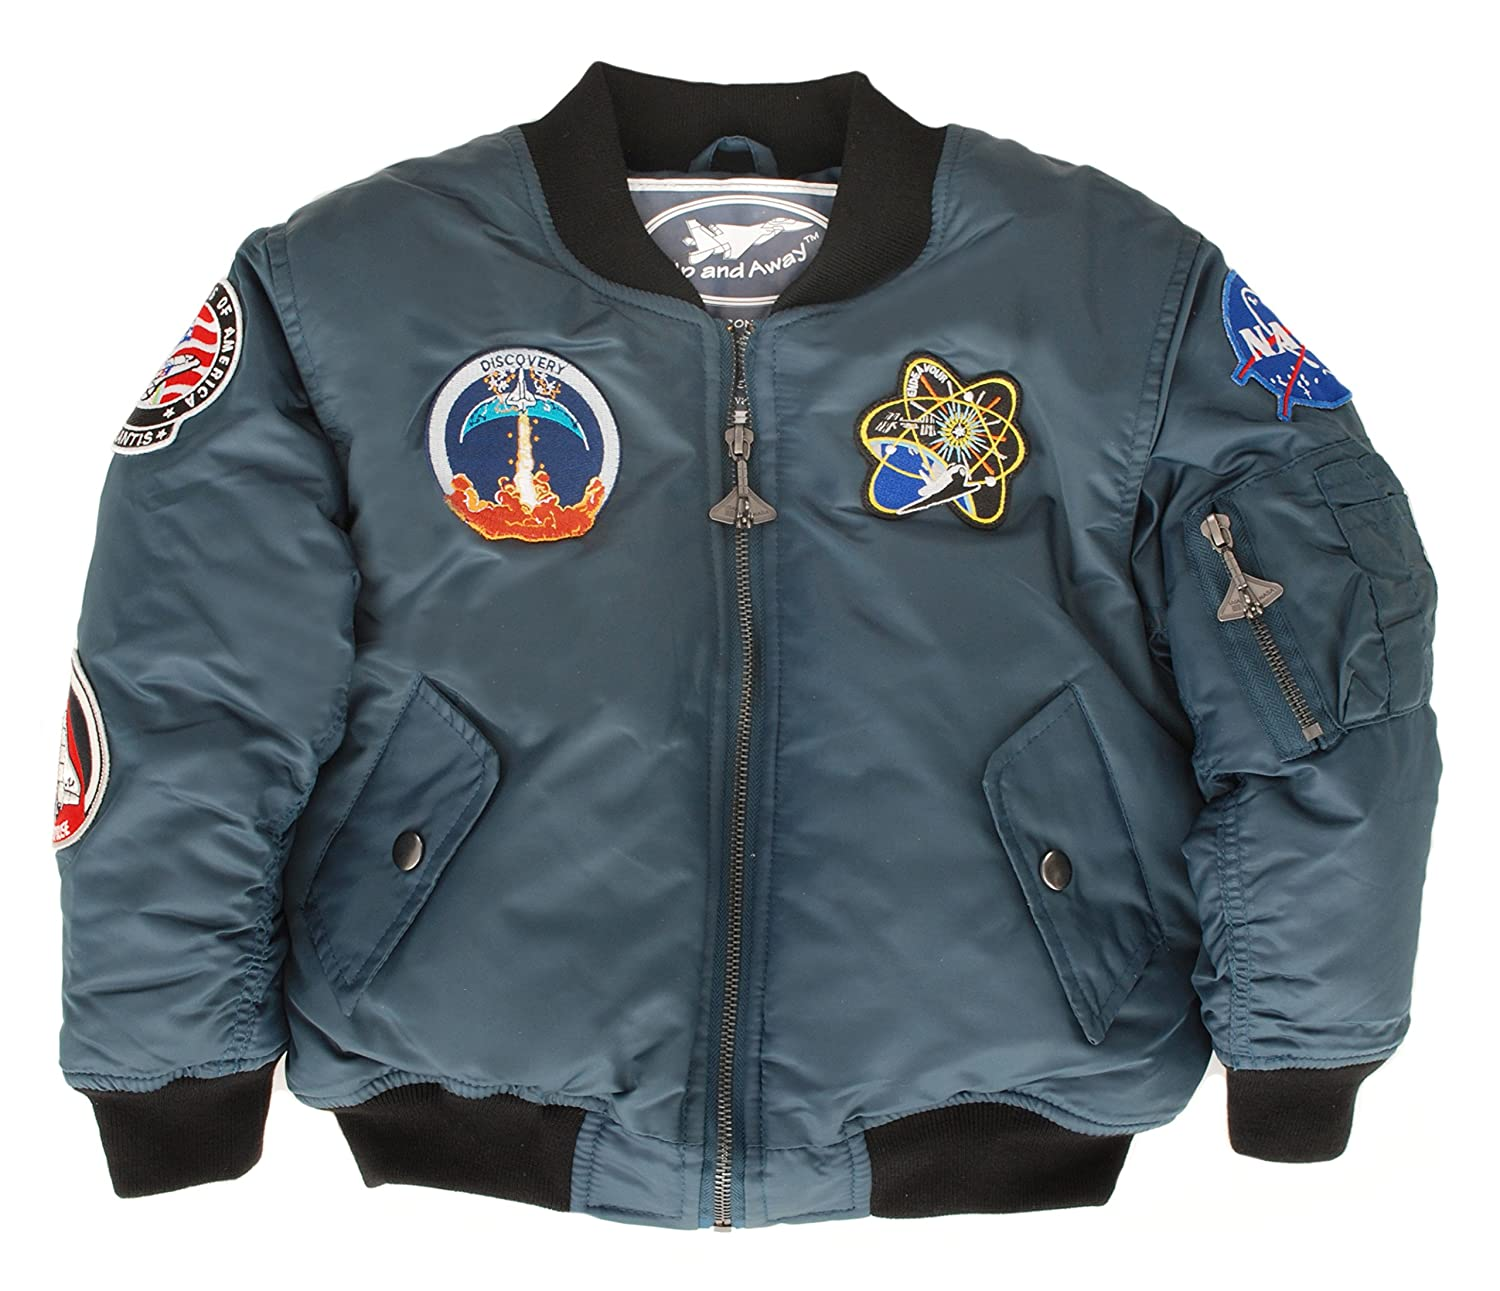 Up and Away Boys' Space Shuttle Jacket